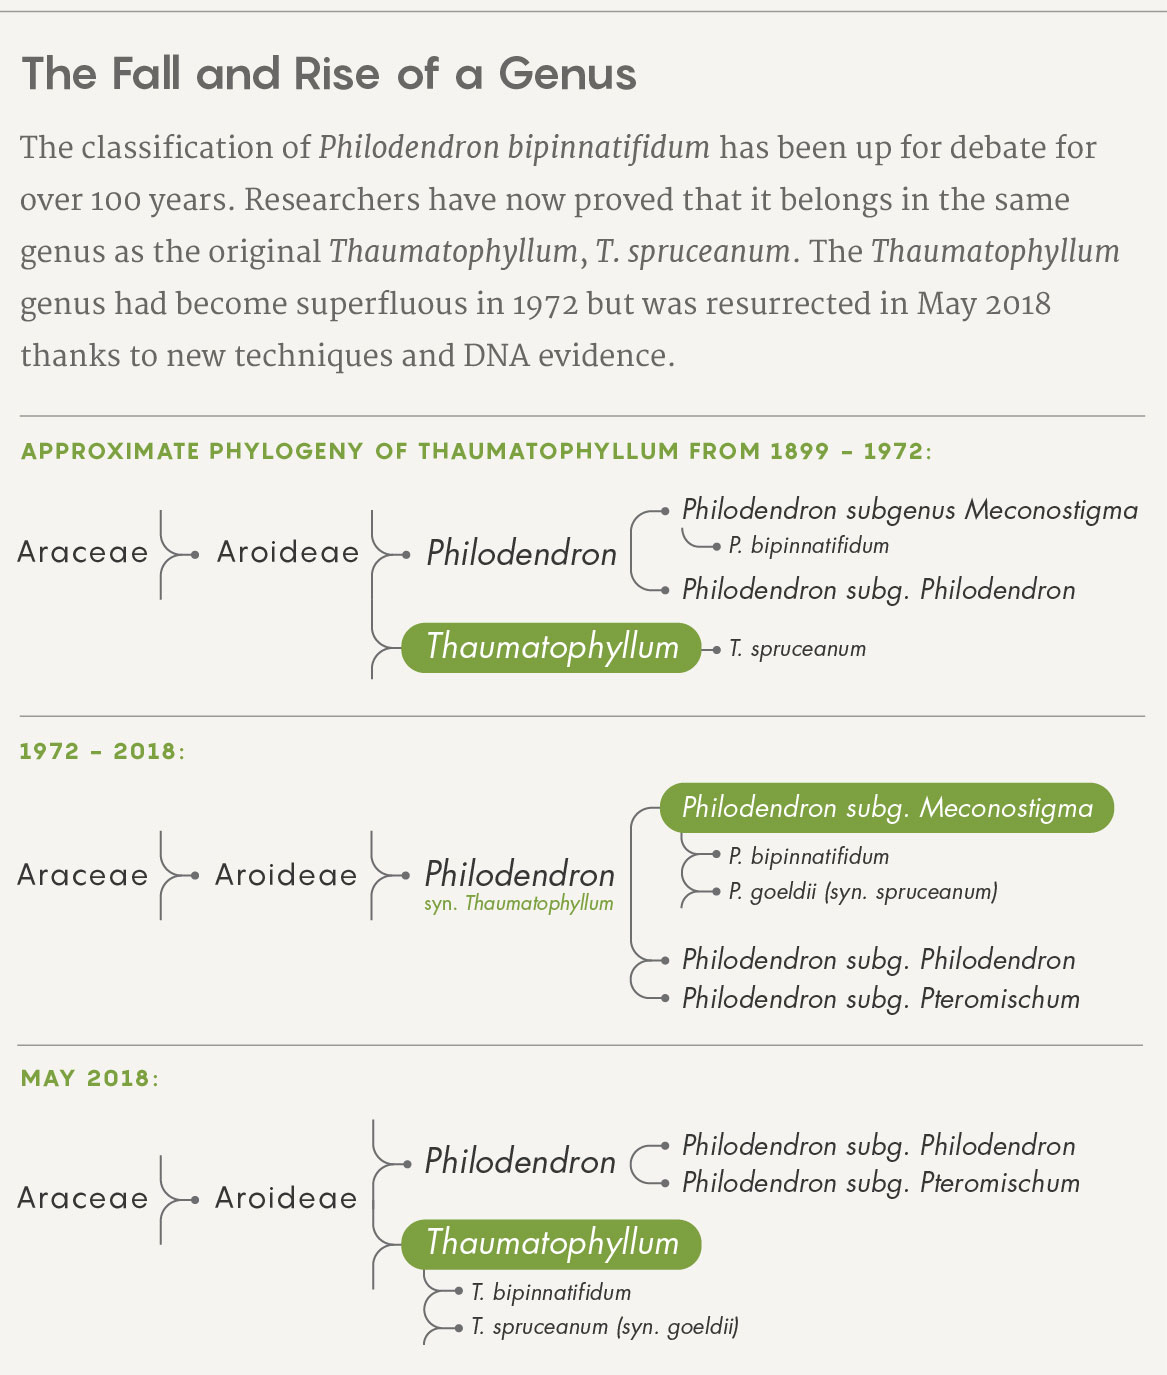 The classification of Philodendron bipinnatifidum has been up for debate for over 100 years. Researchers have now proved that it belongs in the same genus as the original Thaumatophyllum, T. spruceanum. The Thaumatophyllum genus had become superfluous in 1972 but was resurrected in May 2018 thanks to new techniques and DNA evidence.